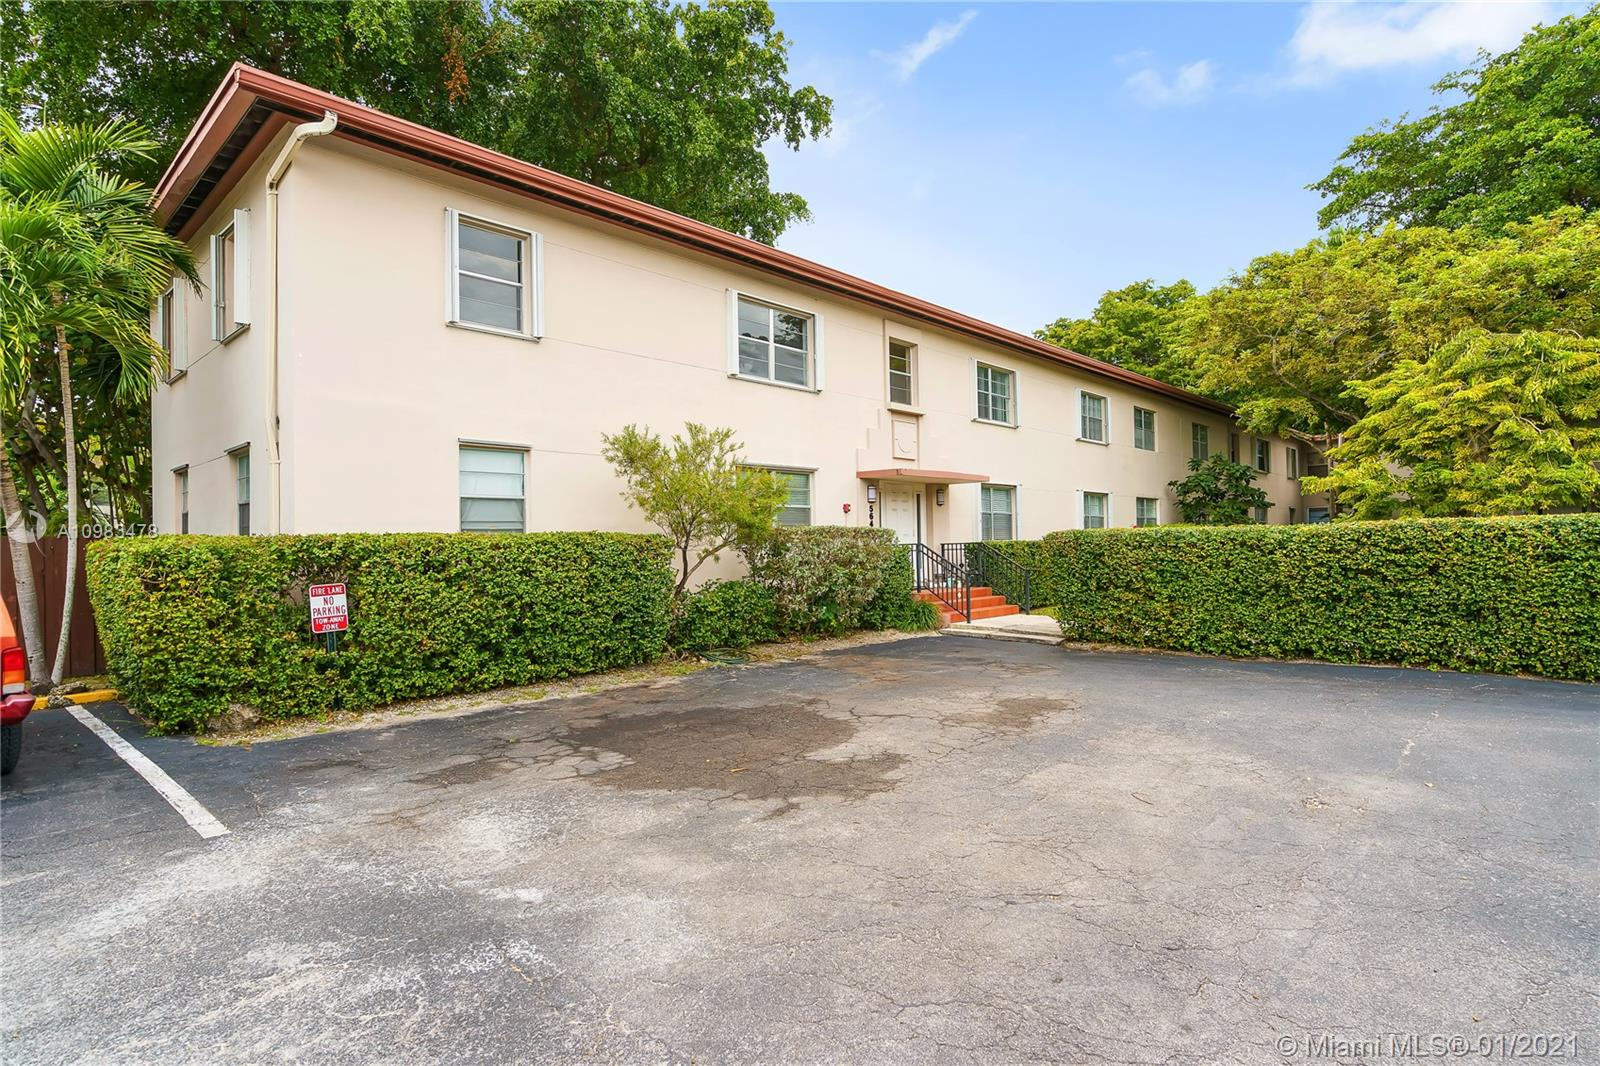 Oversized South Miami condo ready for its new owner! This south-facing upstairs end unit is brightly lighted, features natural hardwood floors, fresh paint, spacious living areas, and large windows. New AC, accordion hurricane shutters, large closets, 2 ceiling fans, cable-ready, downstairs mailbox. Lush, fenced-in garden w/ walking paths. Large, lovely pool, updated laundry room, clubhouse, back yard BBQ/picnic area. The building only has 4 units and boasts plenty of parking. Located just minutes from US-1, Univ. of Miami, downtown Coral Gables, great schools, and dining. A 5-minute walk to South Miami, Shops at Sunset Place.